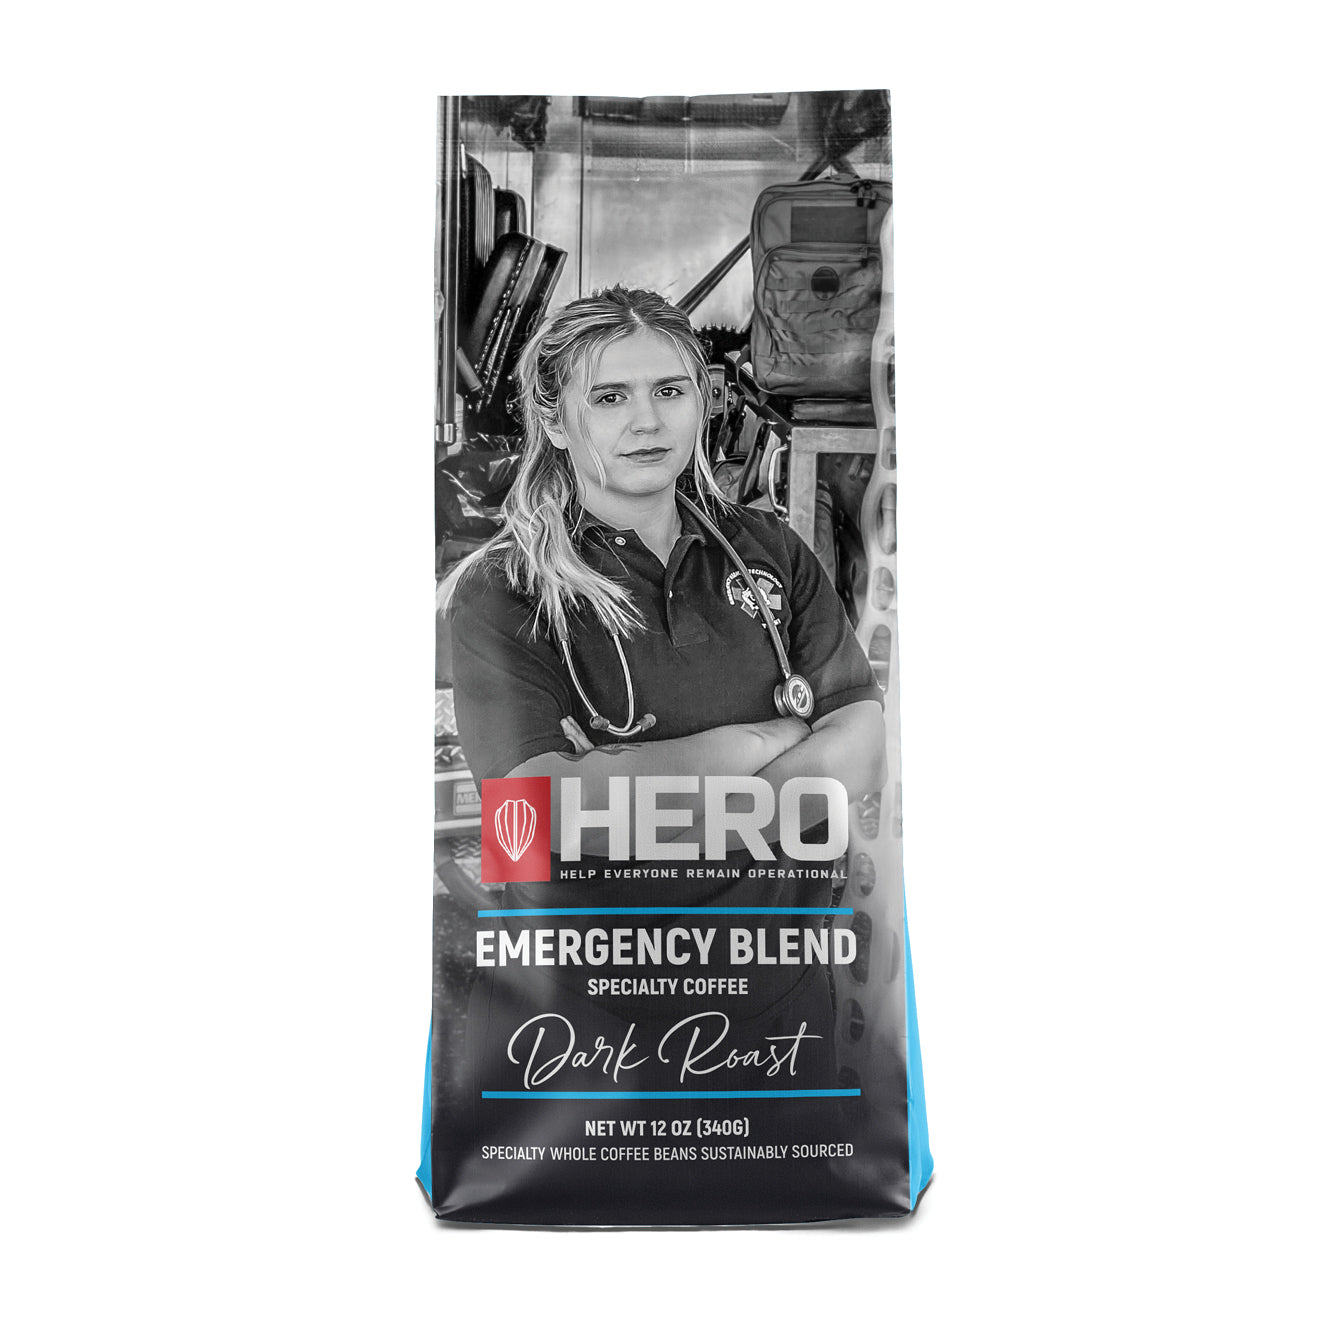 HERO Emergency Blend Dark Roast Coffee